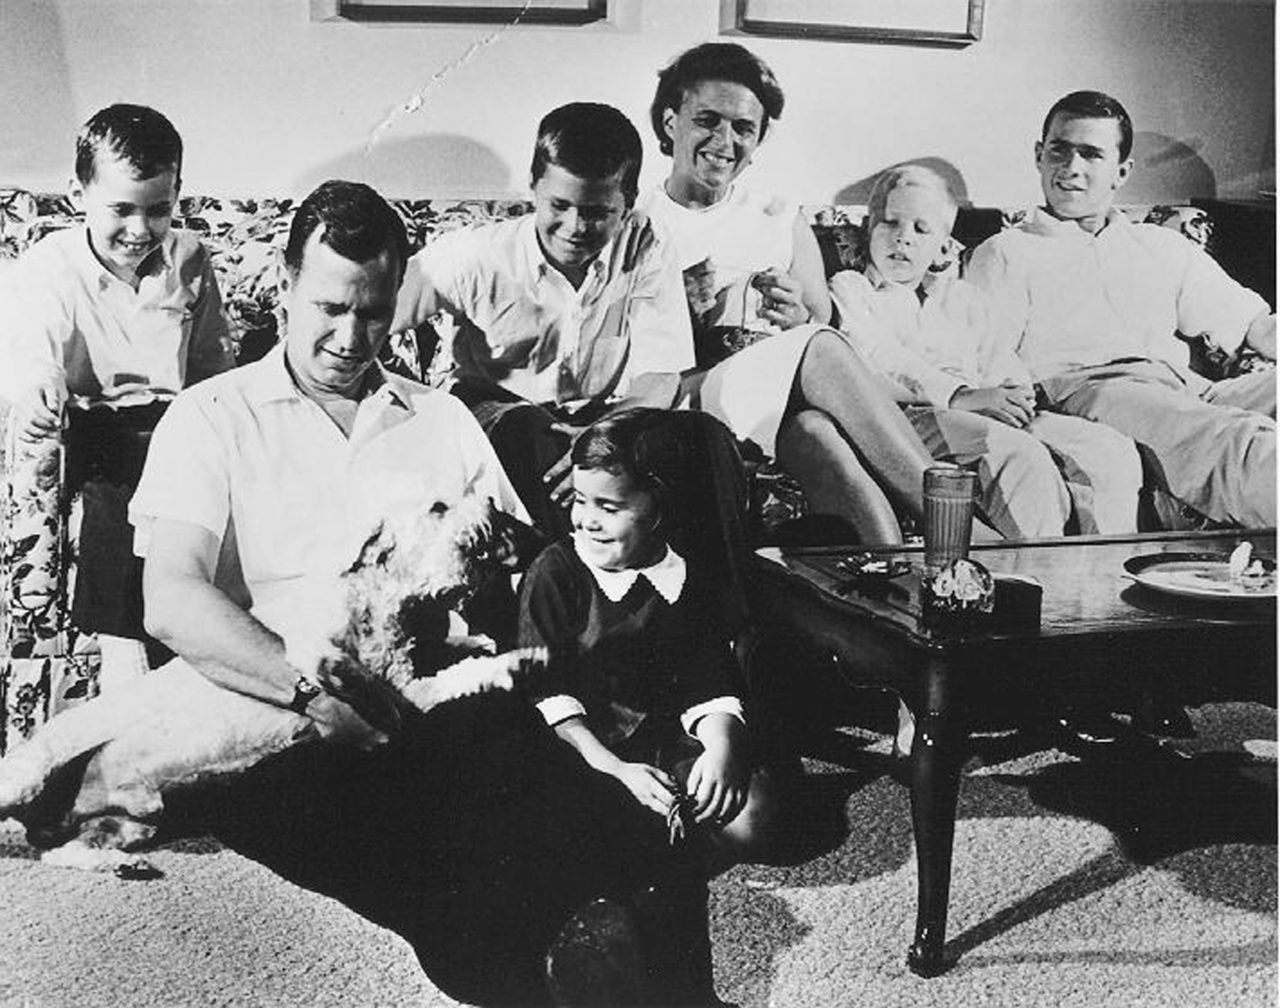 The Bush Family in Houston, Texas, 1964, prior to George H.W. Bush's Victorious Race for United States Congress. George W. Bush is at far right. (AP Photo)